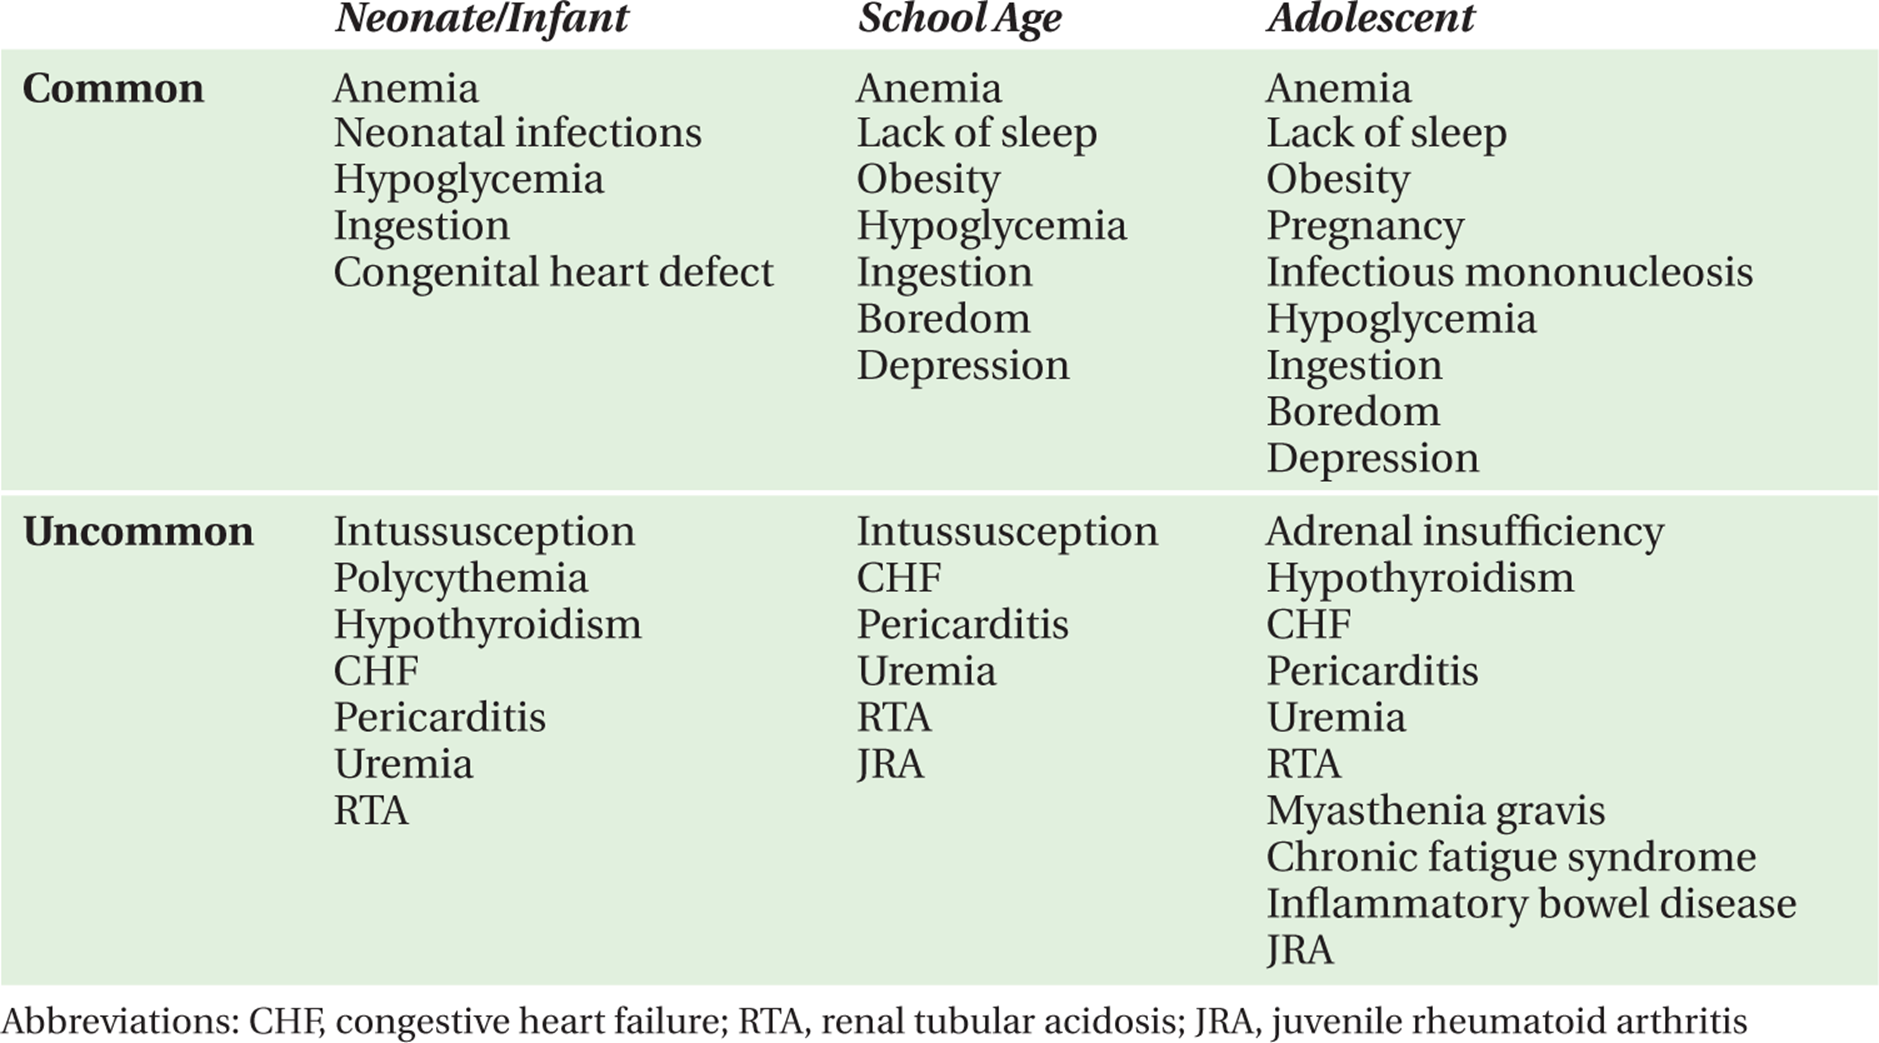 DECREASED ACTIVITY LEVEL - Symptom-Based Diagnosis in